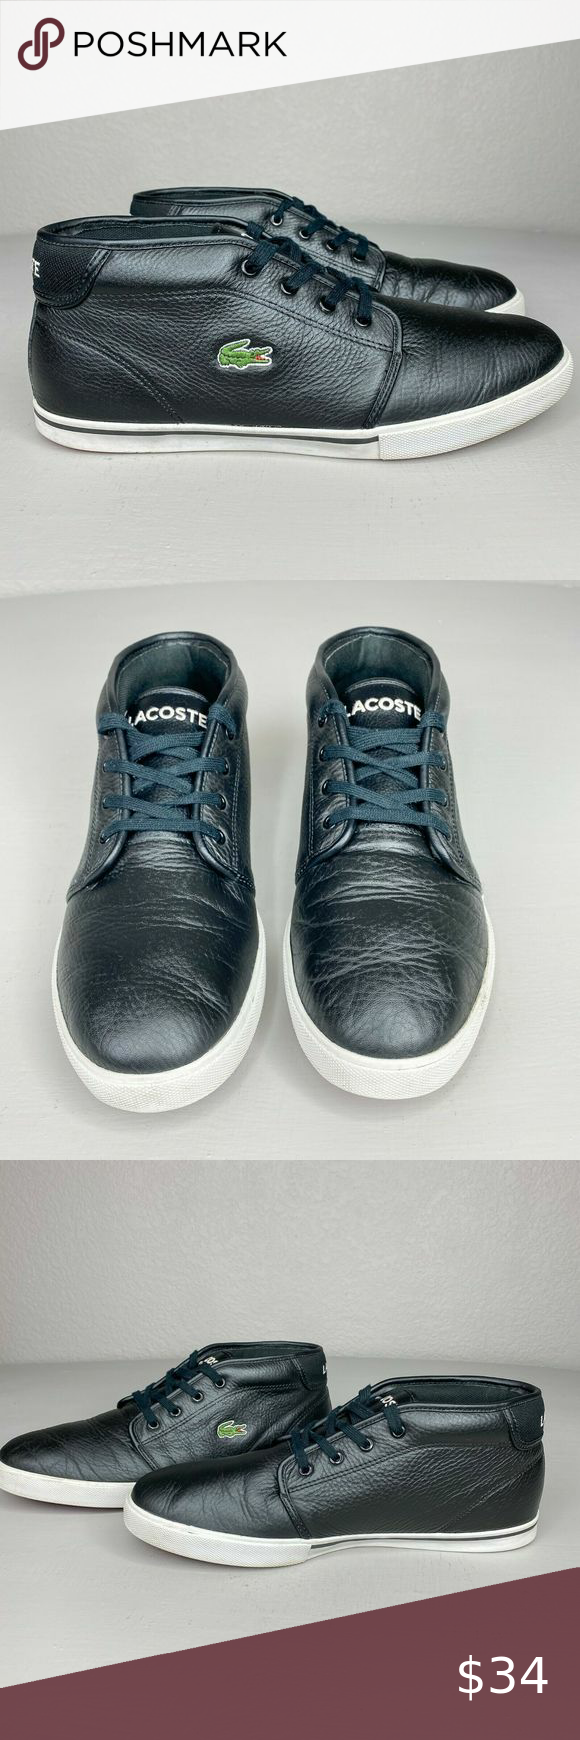 Izod Lacoste 10 Black Leather High Top